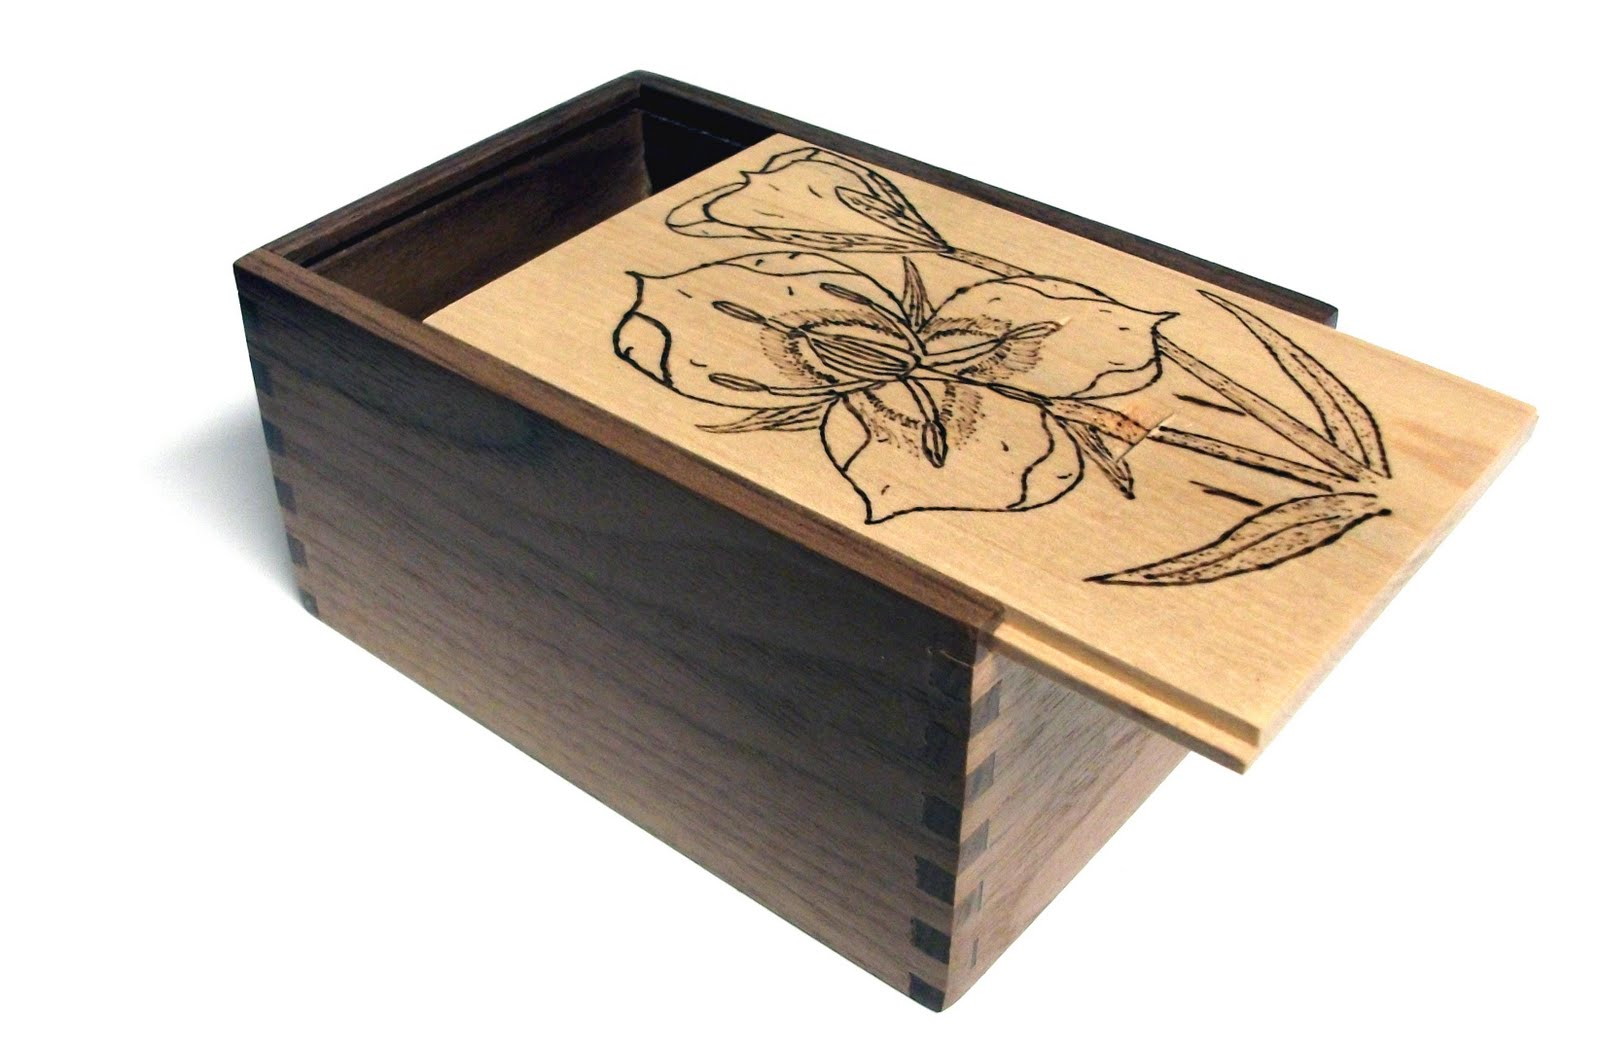 Wooden Box Designs Ideas